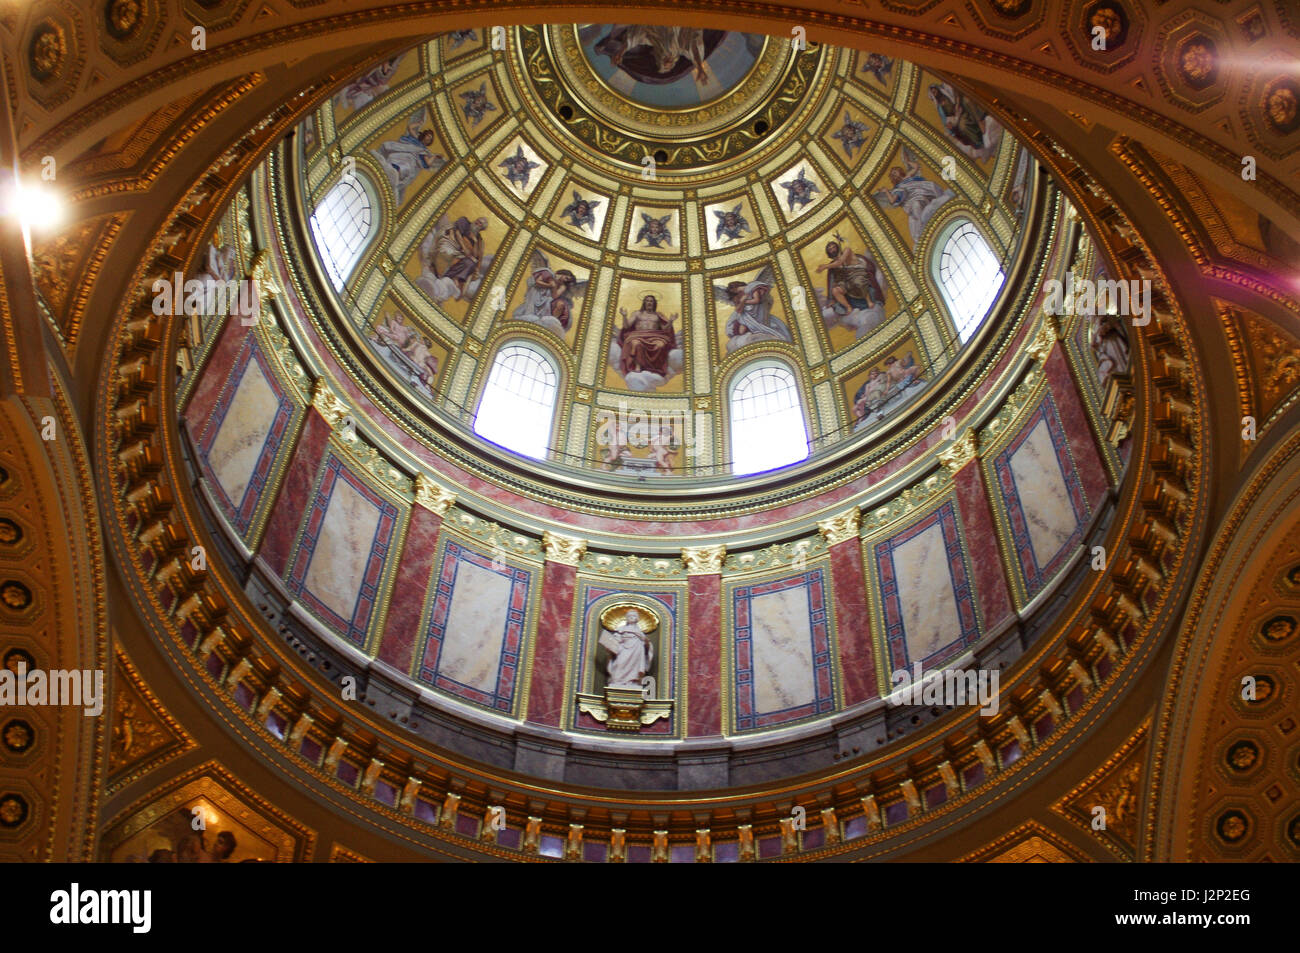 St Peters Basilica in Budapest Hungary. The painted, ornate dome has much religious iconography - Stock Image